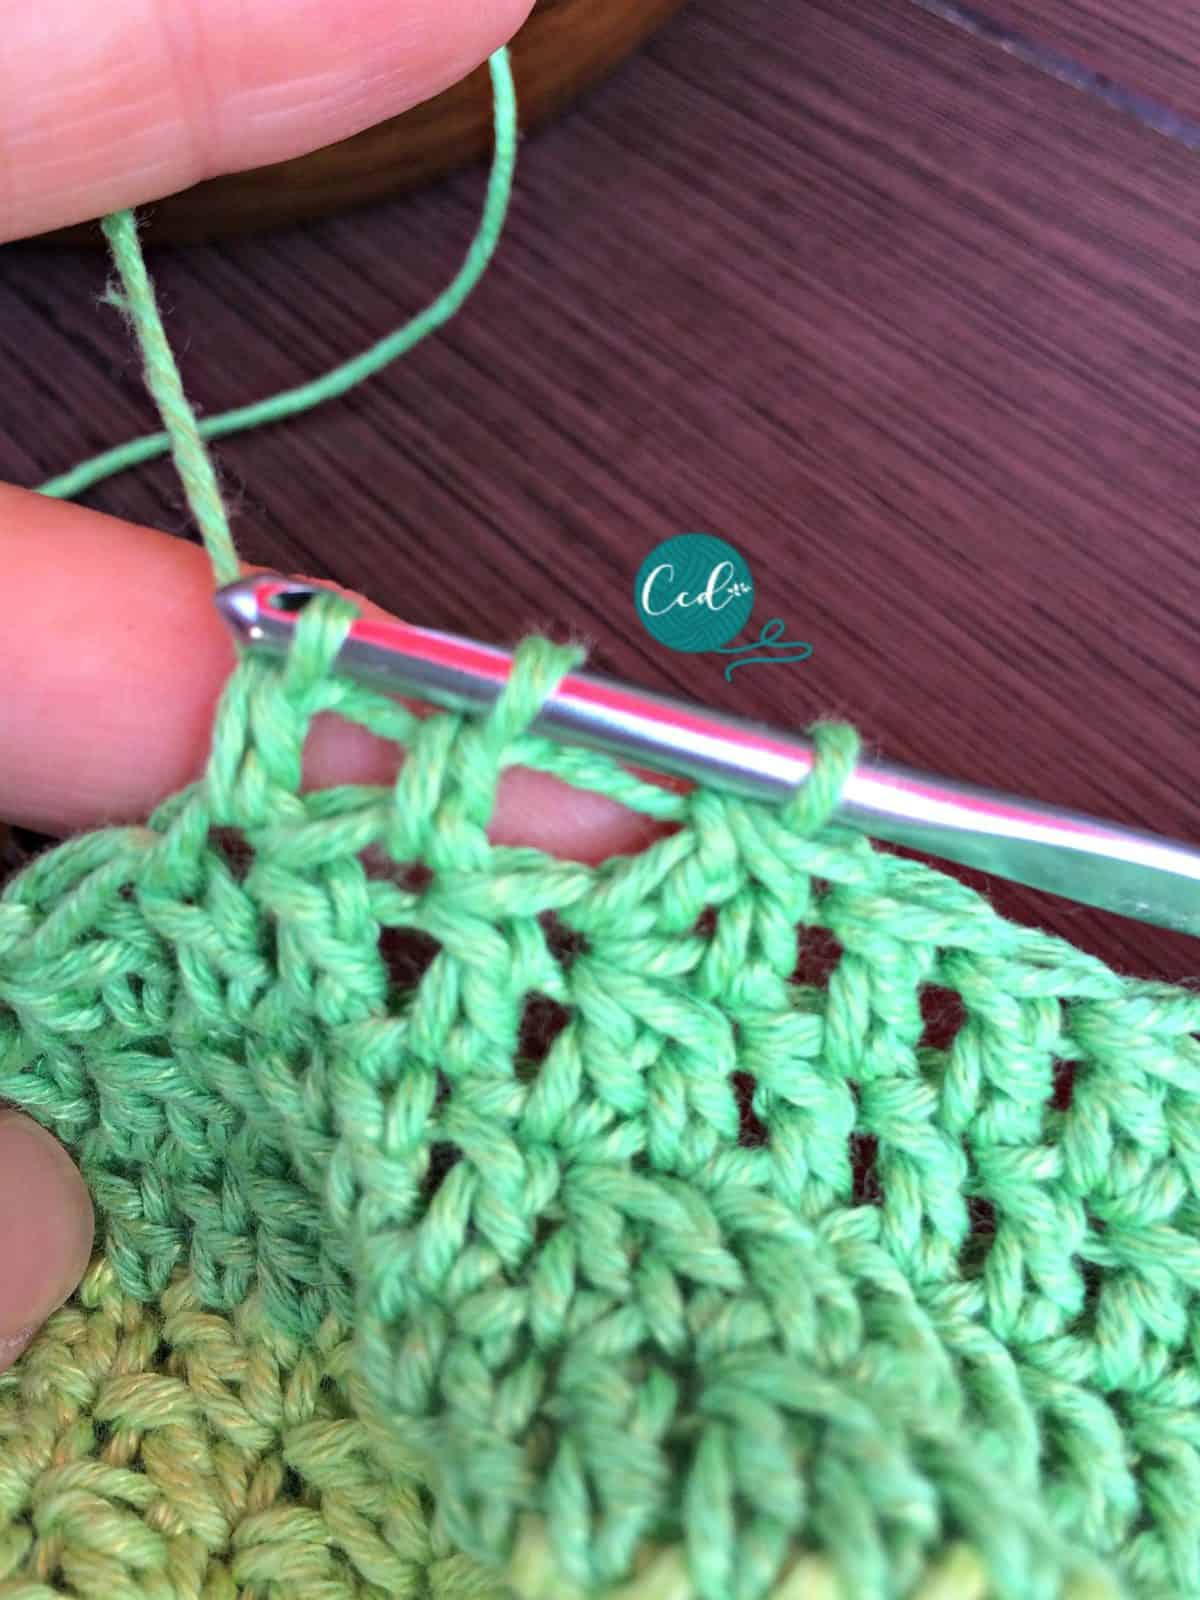 Two double crochets started on hook.